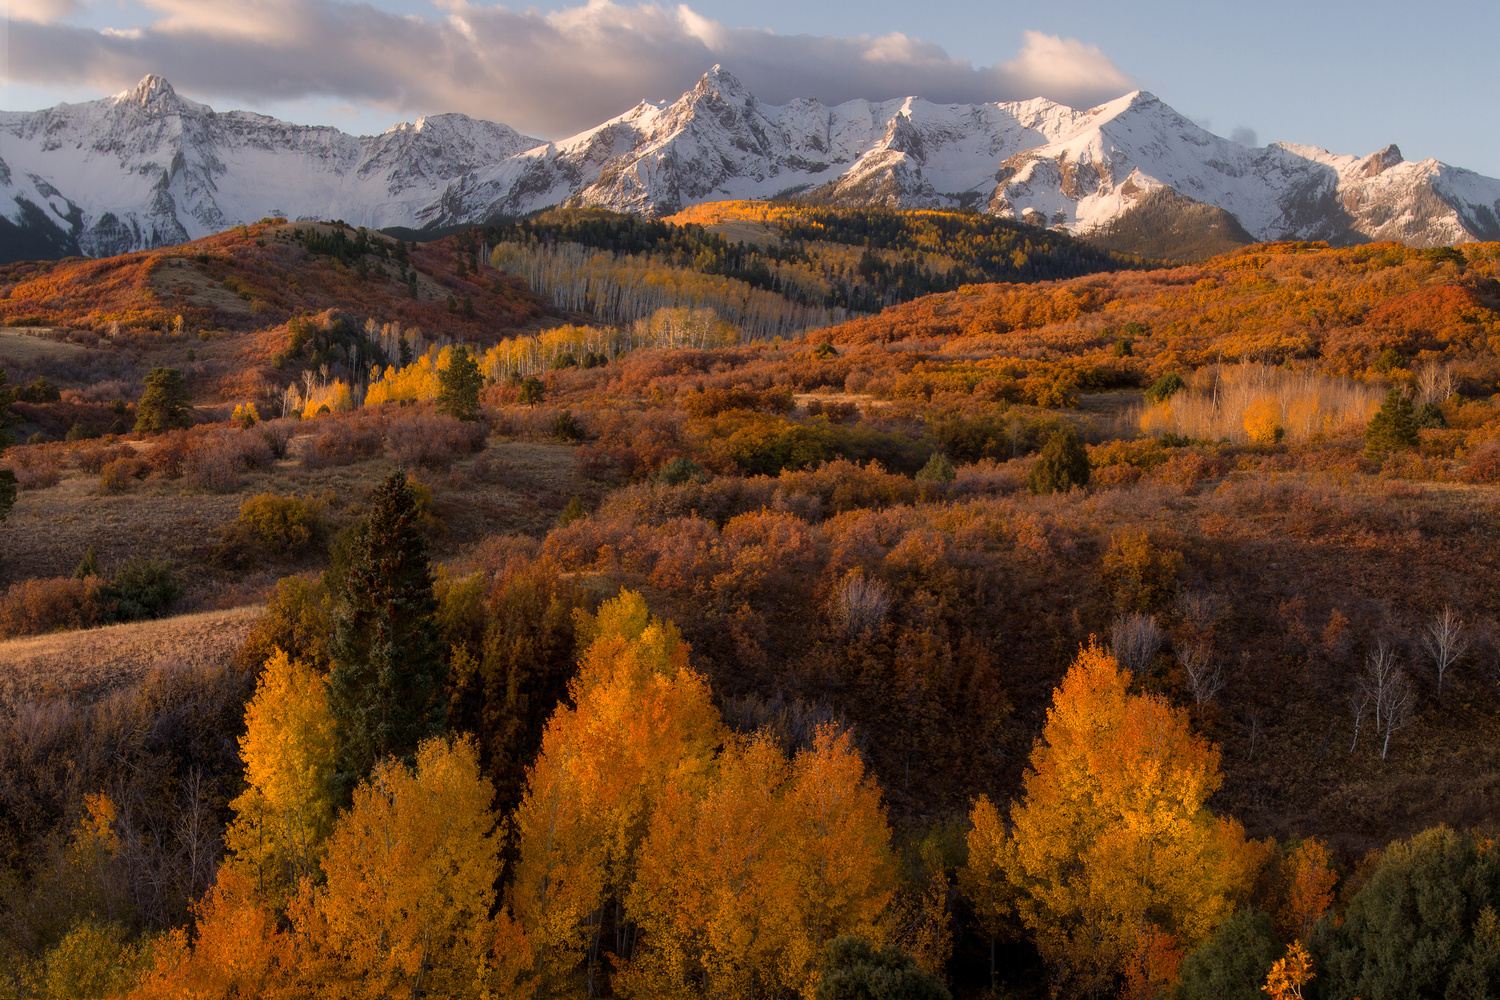 Fall in the Colorado Rockies by Nick Souvall